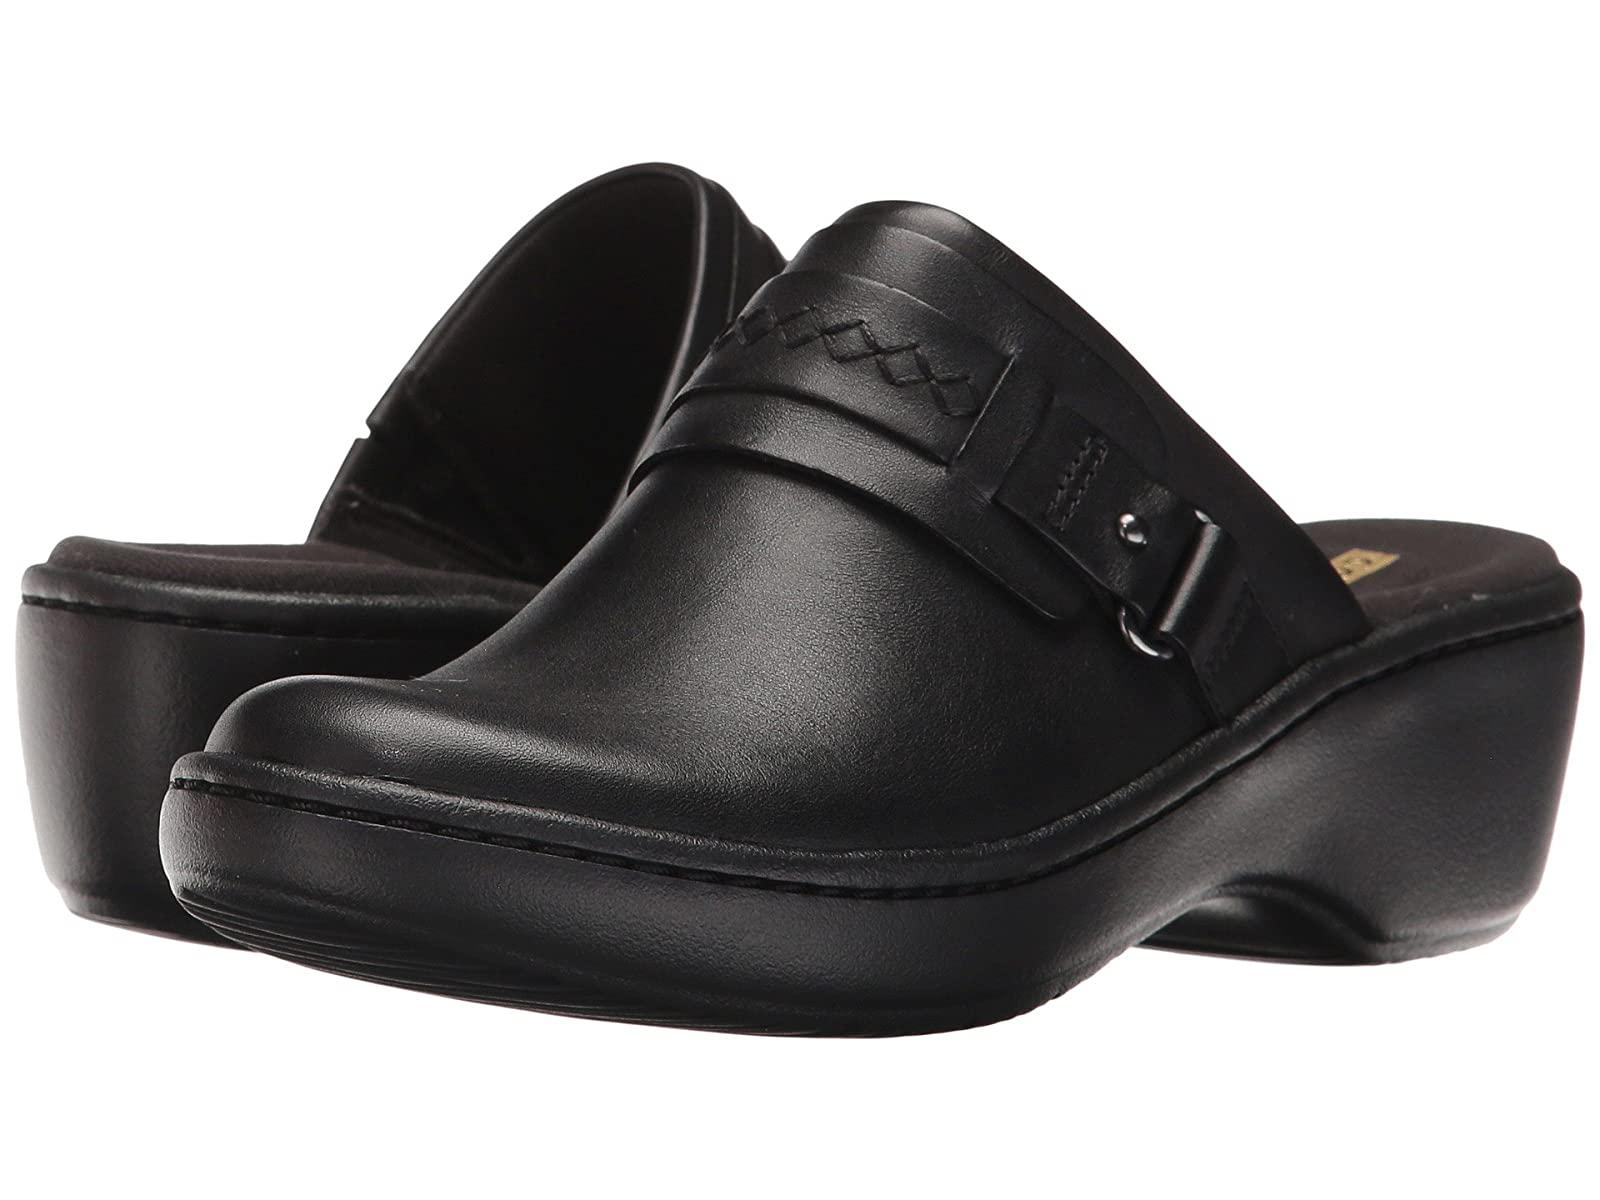 Clarks Delana AmberEconomical and quality shoes